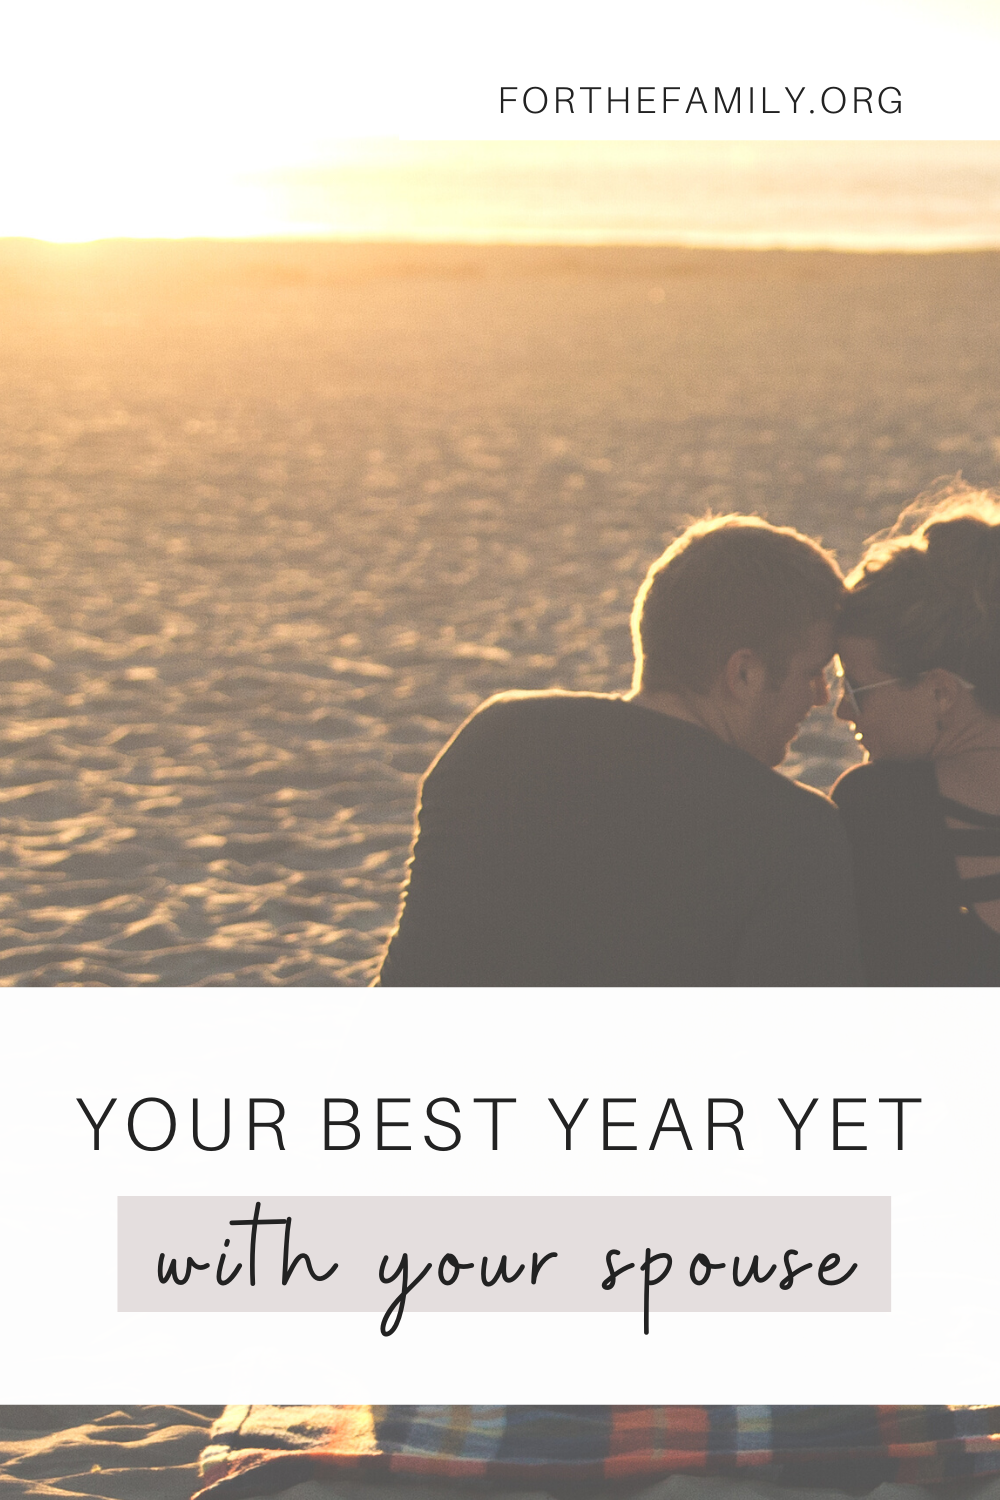 We all make New Year's resolutions when it comes to fitness, work, spiritual growth, etc, but when was the last time we took a look at the health of our marriage? Here is how you can make this year the best year yet with your spouse!!